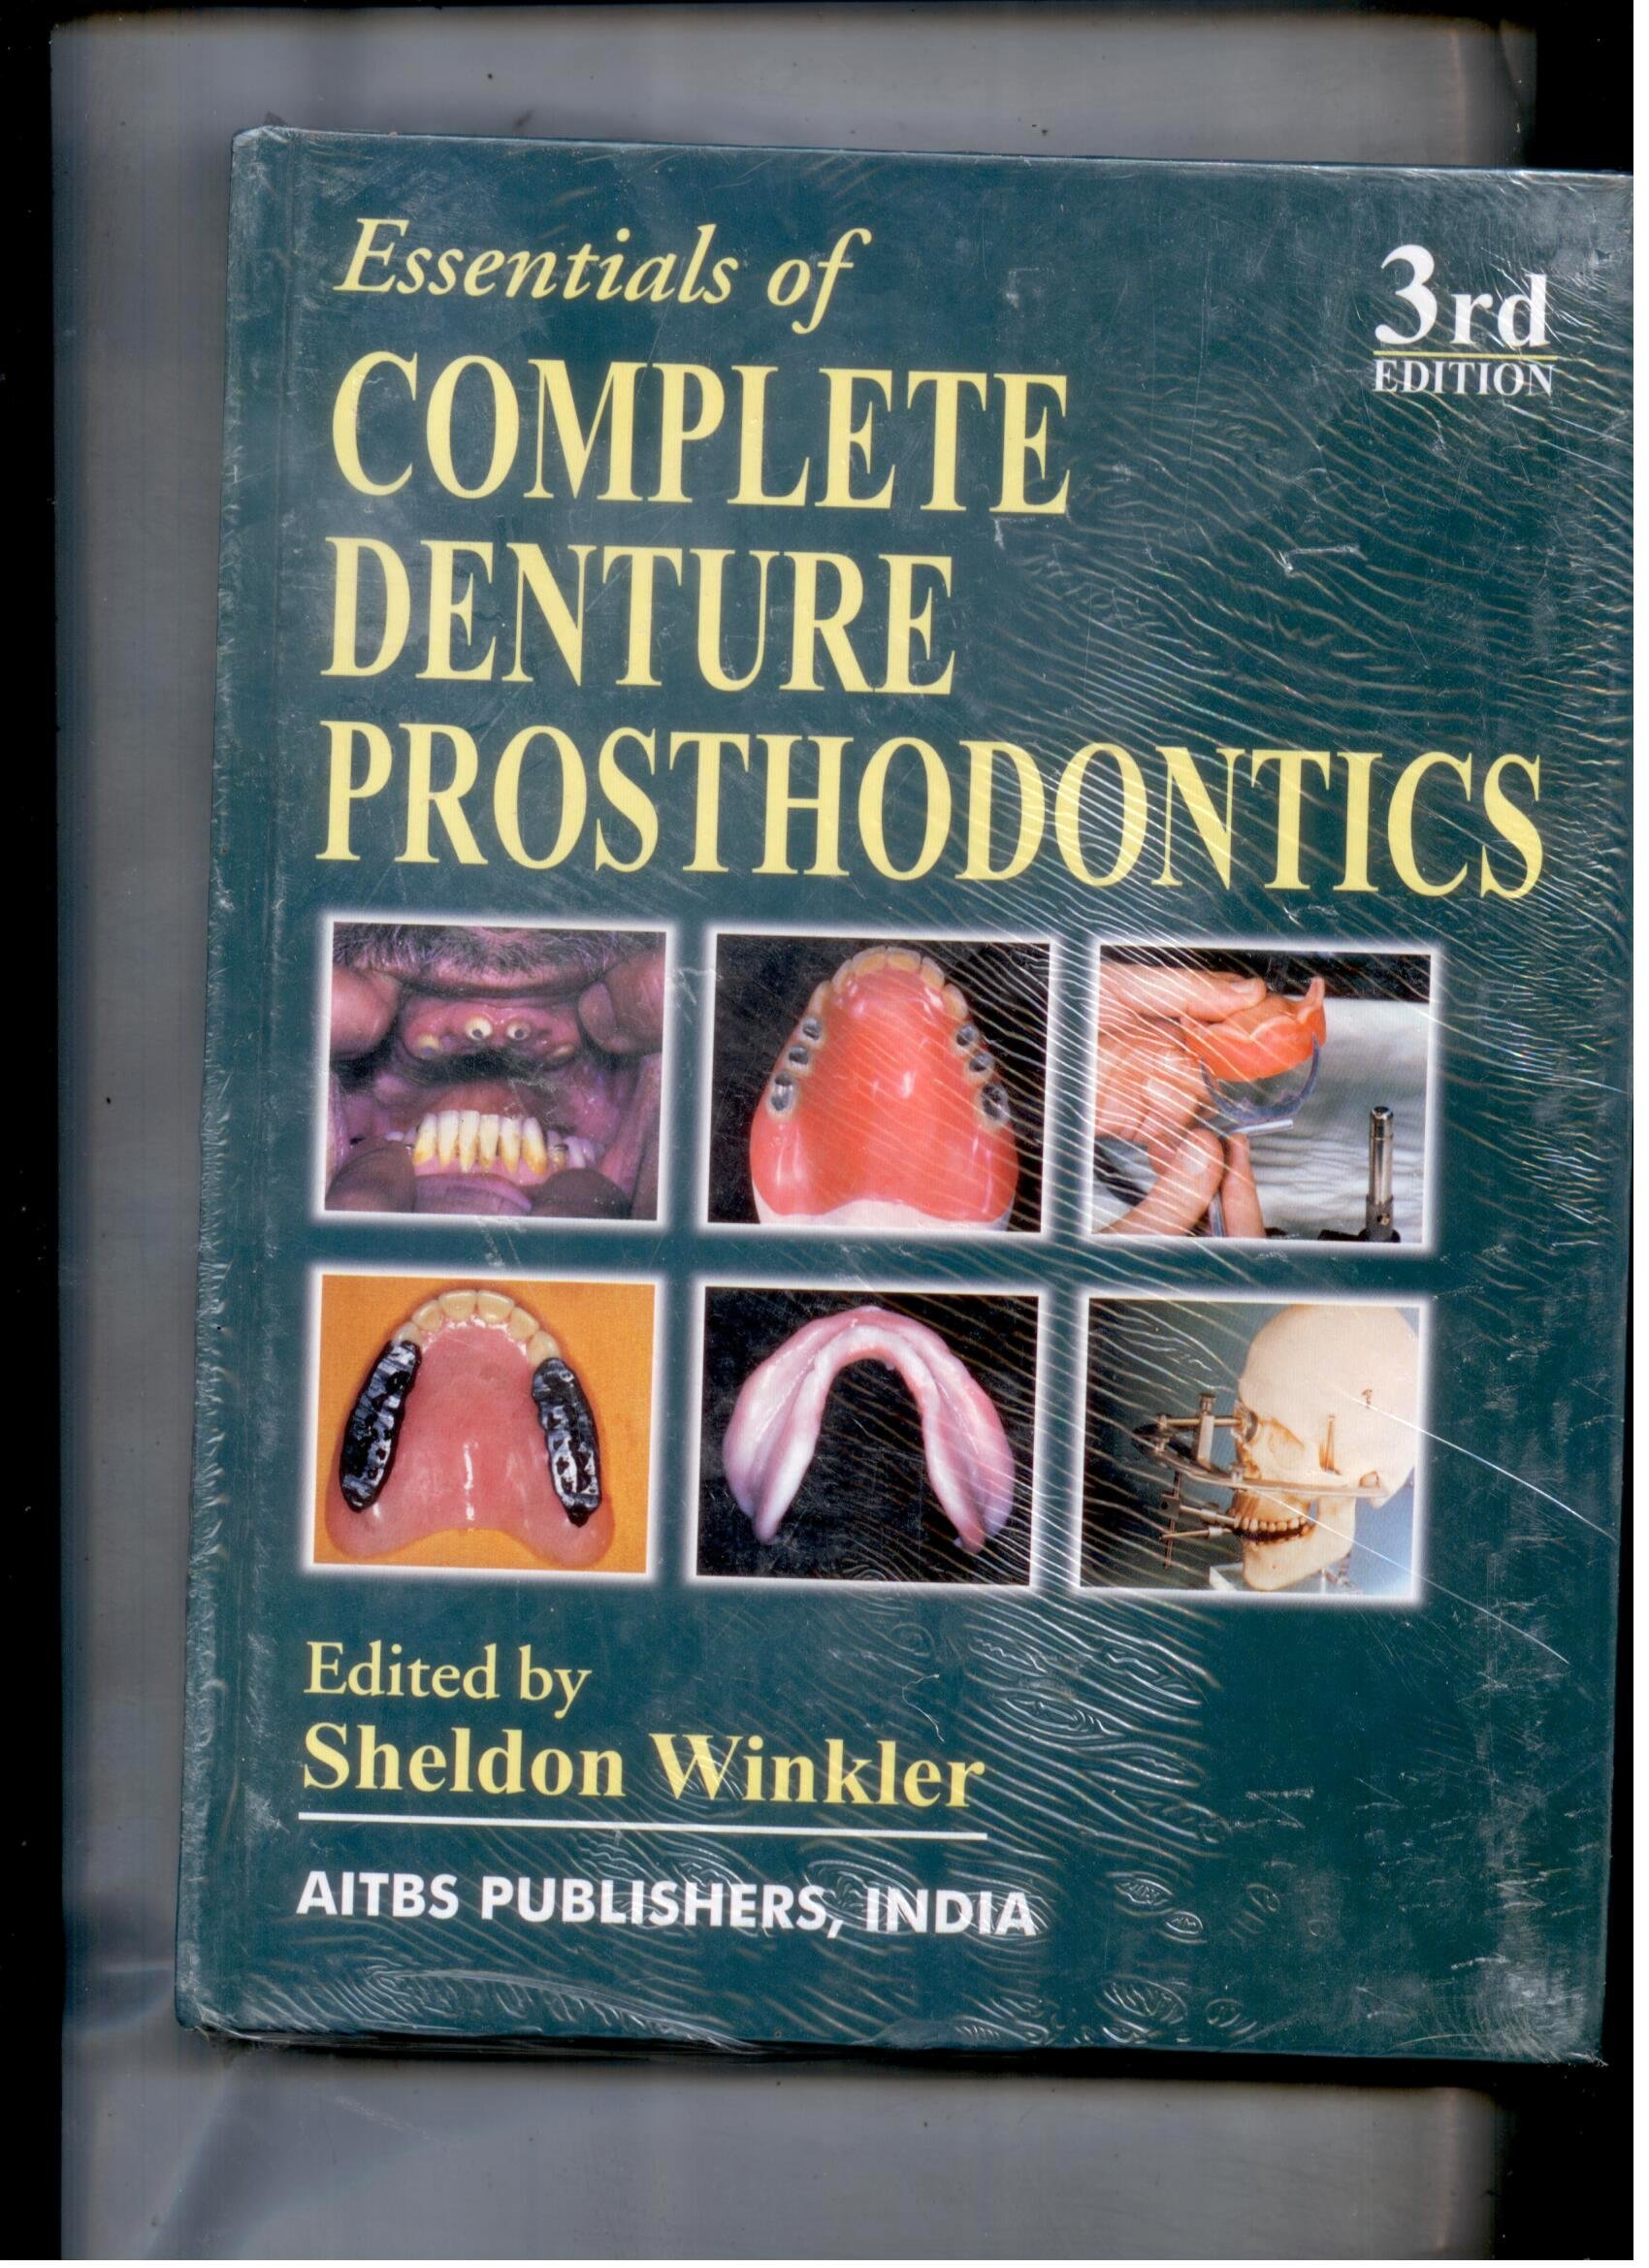 Essentials of complete denture prosthodontics 3ed winkler essentials of complete denture prosthodontics 3ed winkler 9789374735527 amazon books fandeluxe